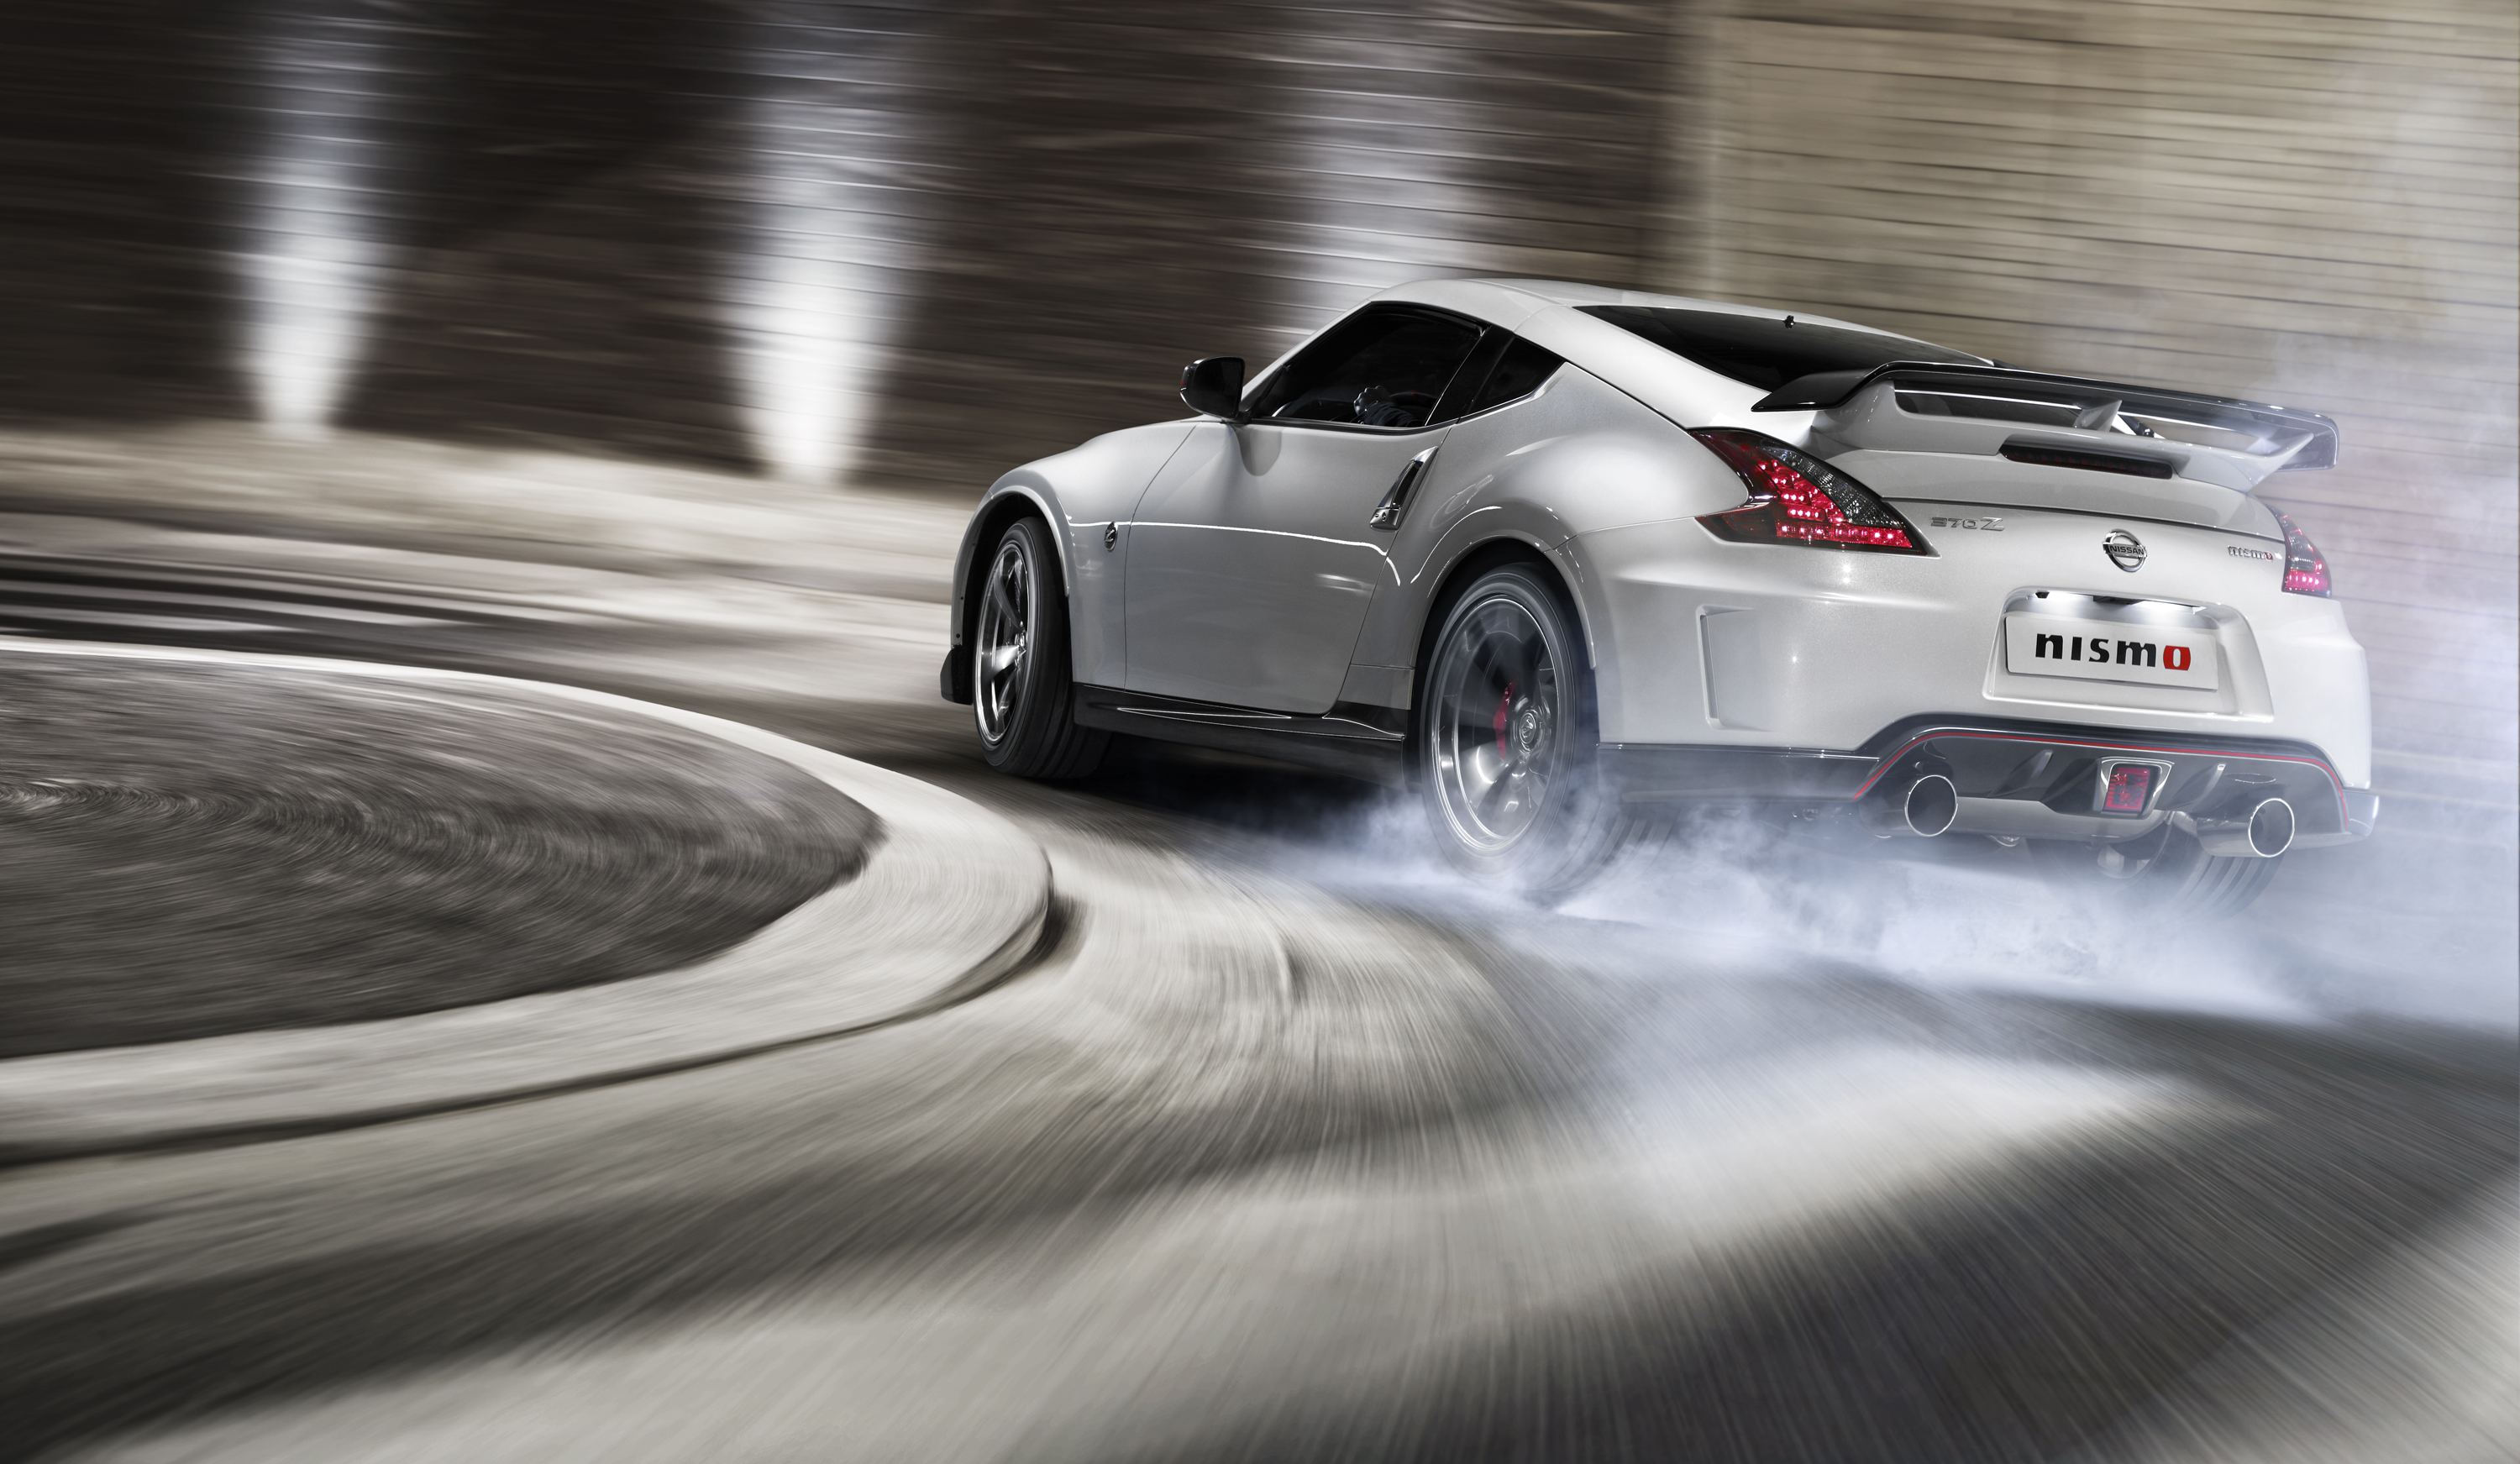 nismo logo wallpaper displaying 11 images for nismo logo wallpaper 3000x1743